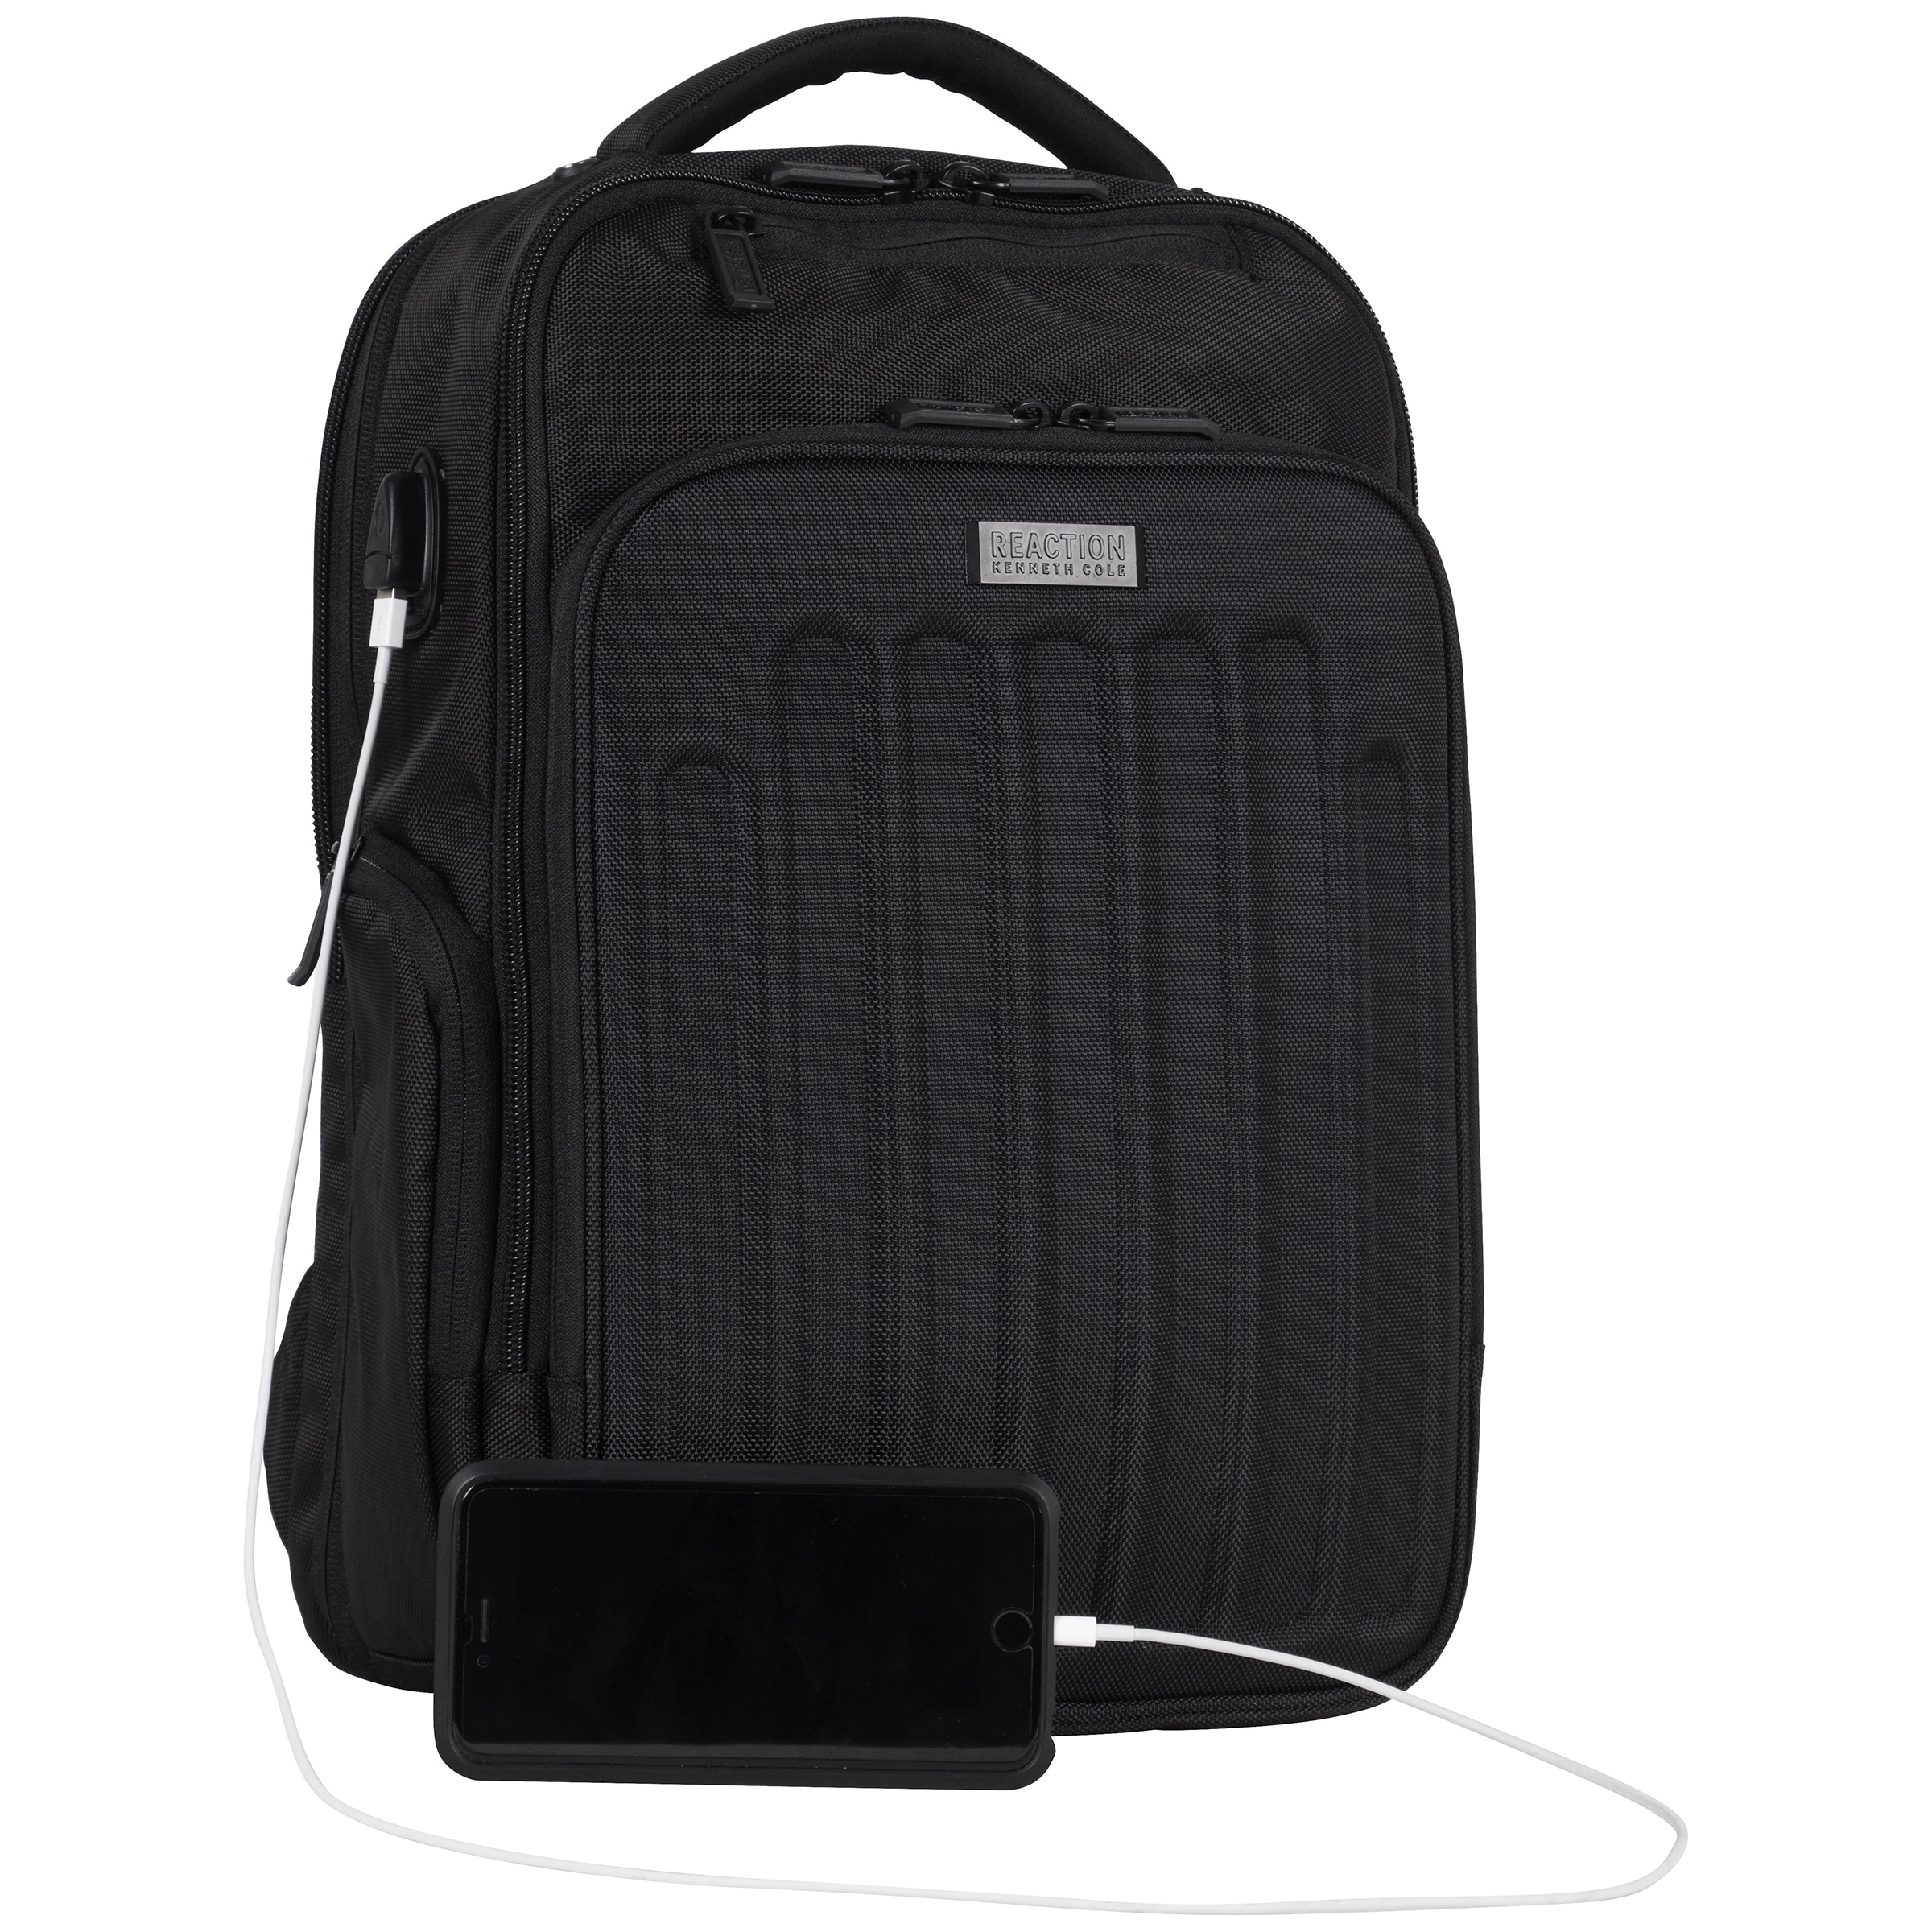 cd8ceaa93712 Signature Backpacks | Find Great Luggage Deals Shopping at Overstock